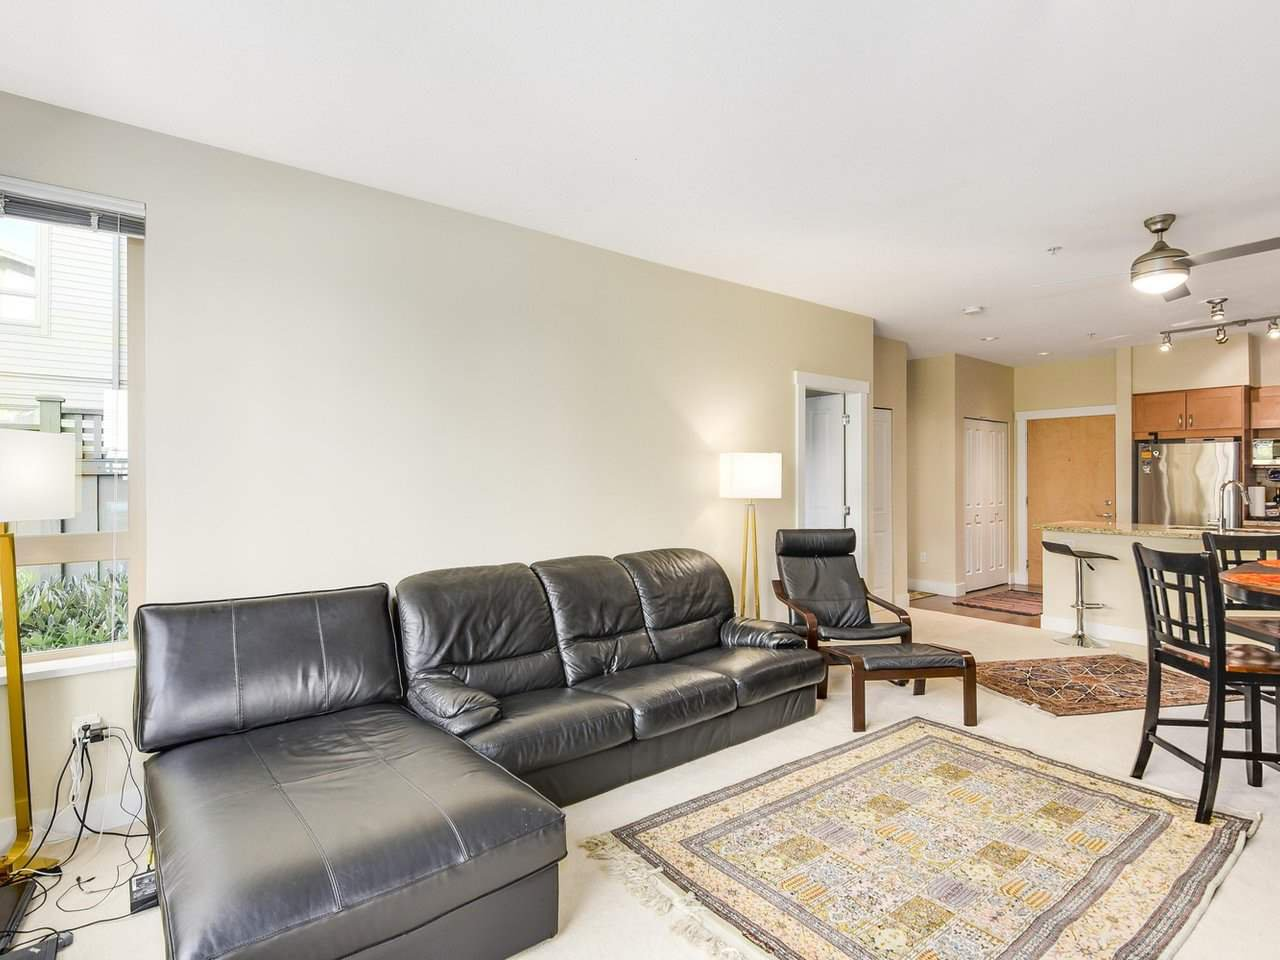 Photo 3: Photos: 106 2601 WHITELEY COURT in North Vancouver: Lynn Valley Condo for sale : MLS®# R2186381